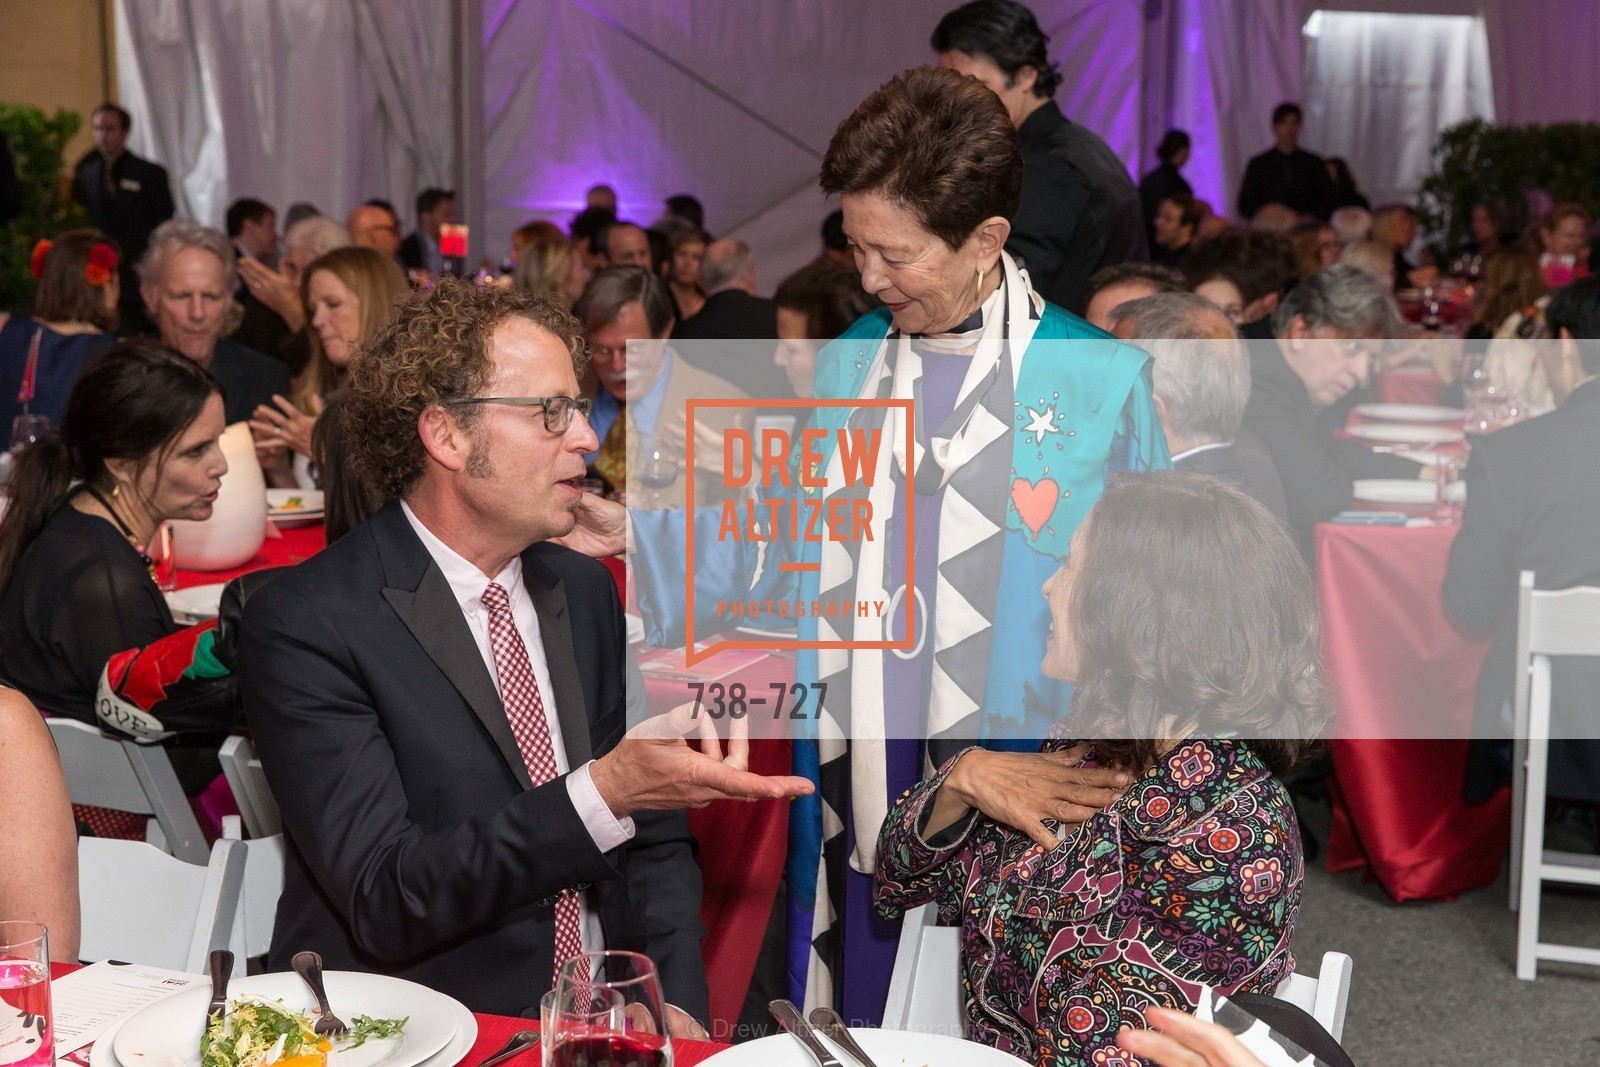 Ken Goldberg, Cissie Swig, Darian Swig, SAN FRANCISCO ART INSTITUTE Gala Honoring Art Visionary and Advocate ROSELYNE CHROMAN SWIG, US, May 14th, 2015,Drew Altizer, Drew Altizer Photography, full-service agency, private events, San Francisco photographer, photographer california